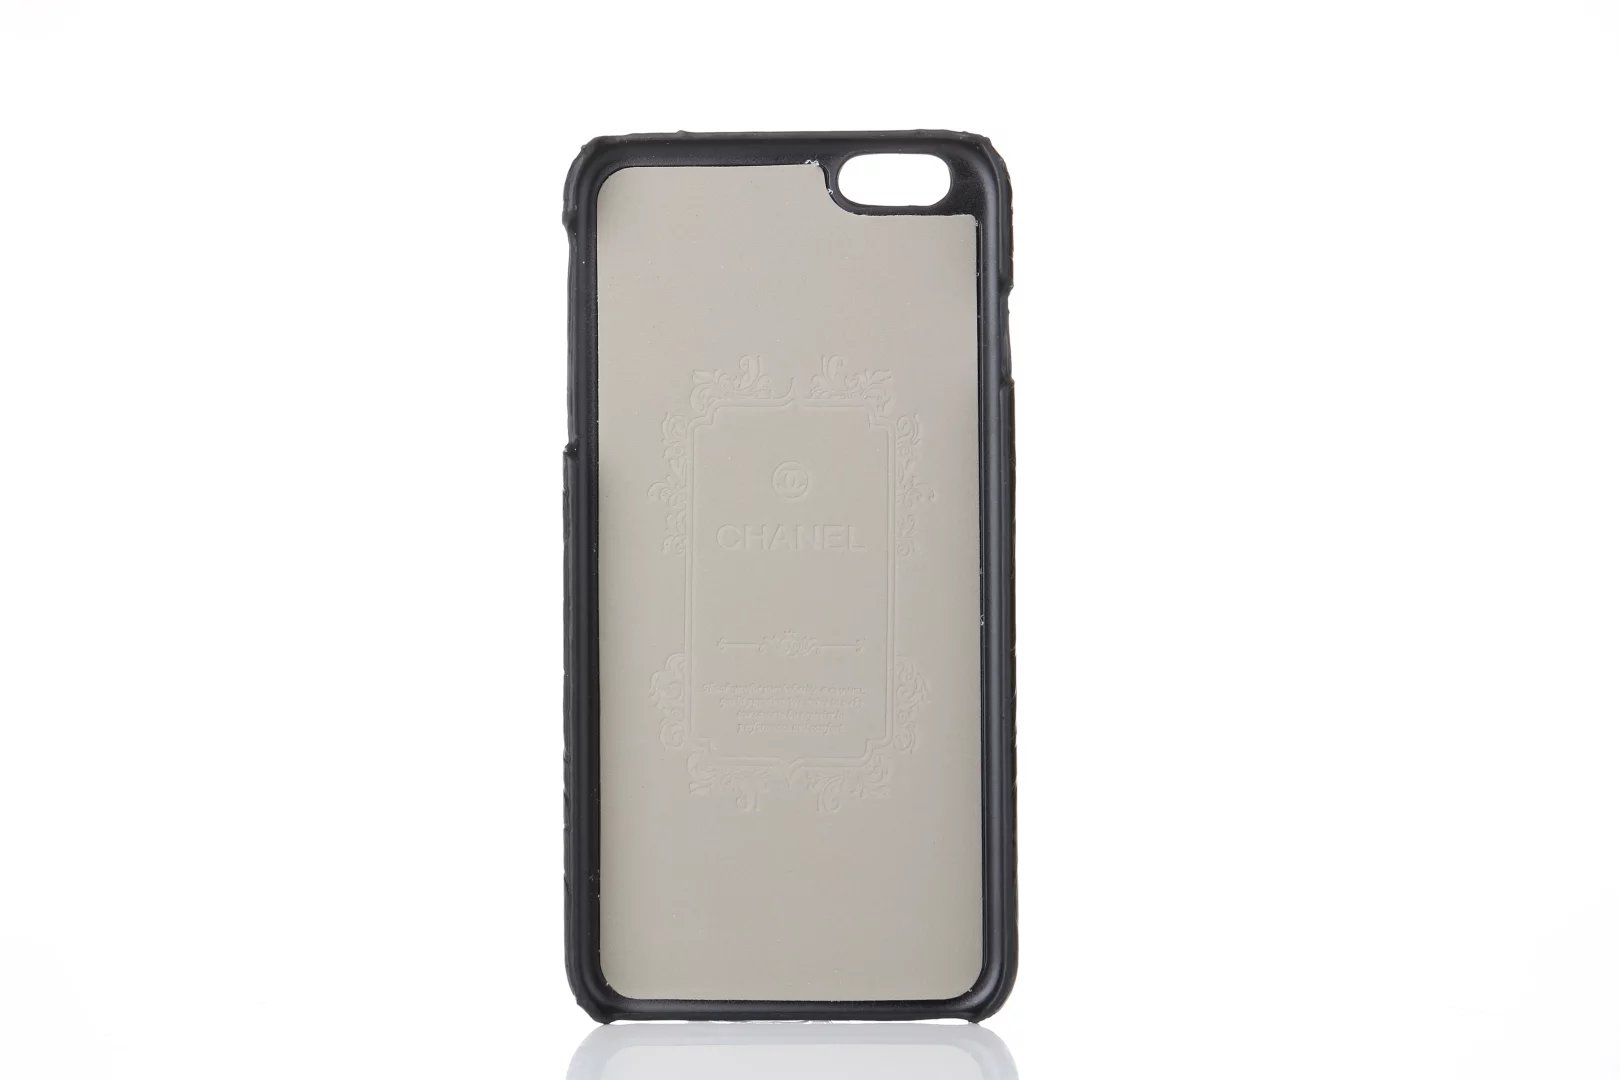 create iphone 6 case protective iphone 6 cases fashion iphone6 case cheap cell phone cases latest apple iphone 6 i 6 phone iphone 6 rate iphone case mold iphone 6 release video